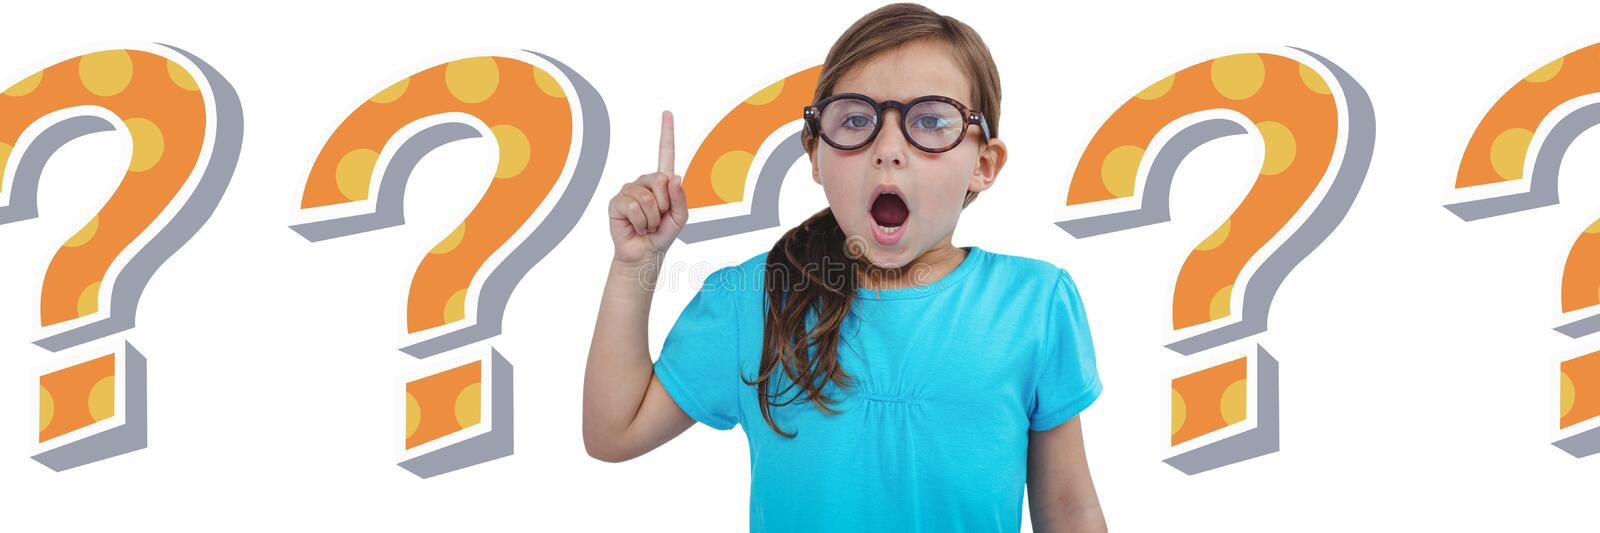 Kid Girl with funky cool question mark vector illustration